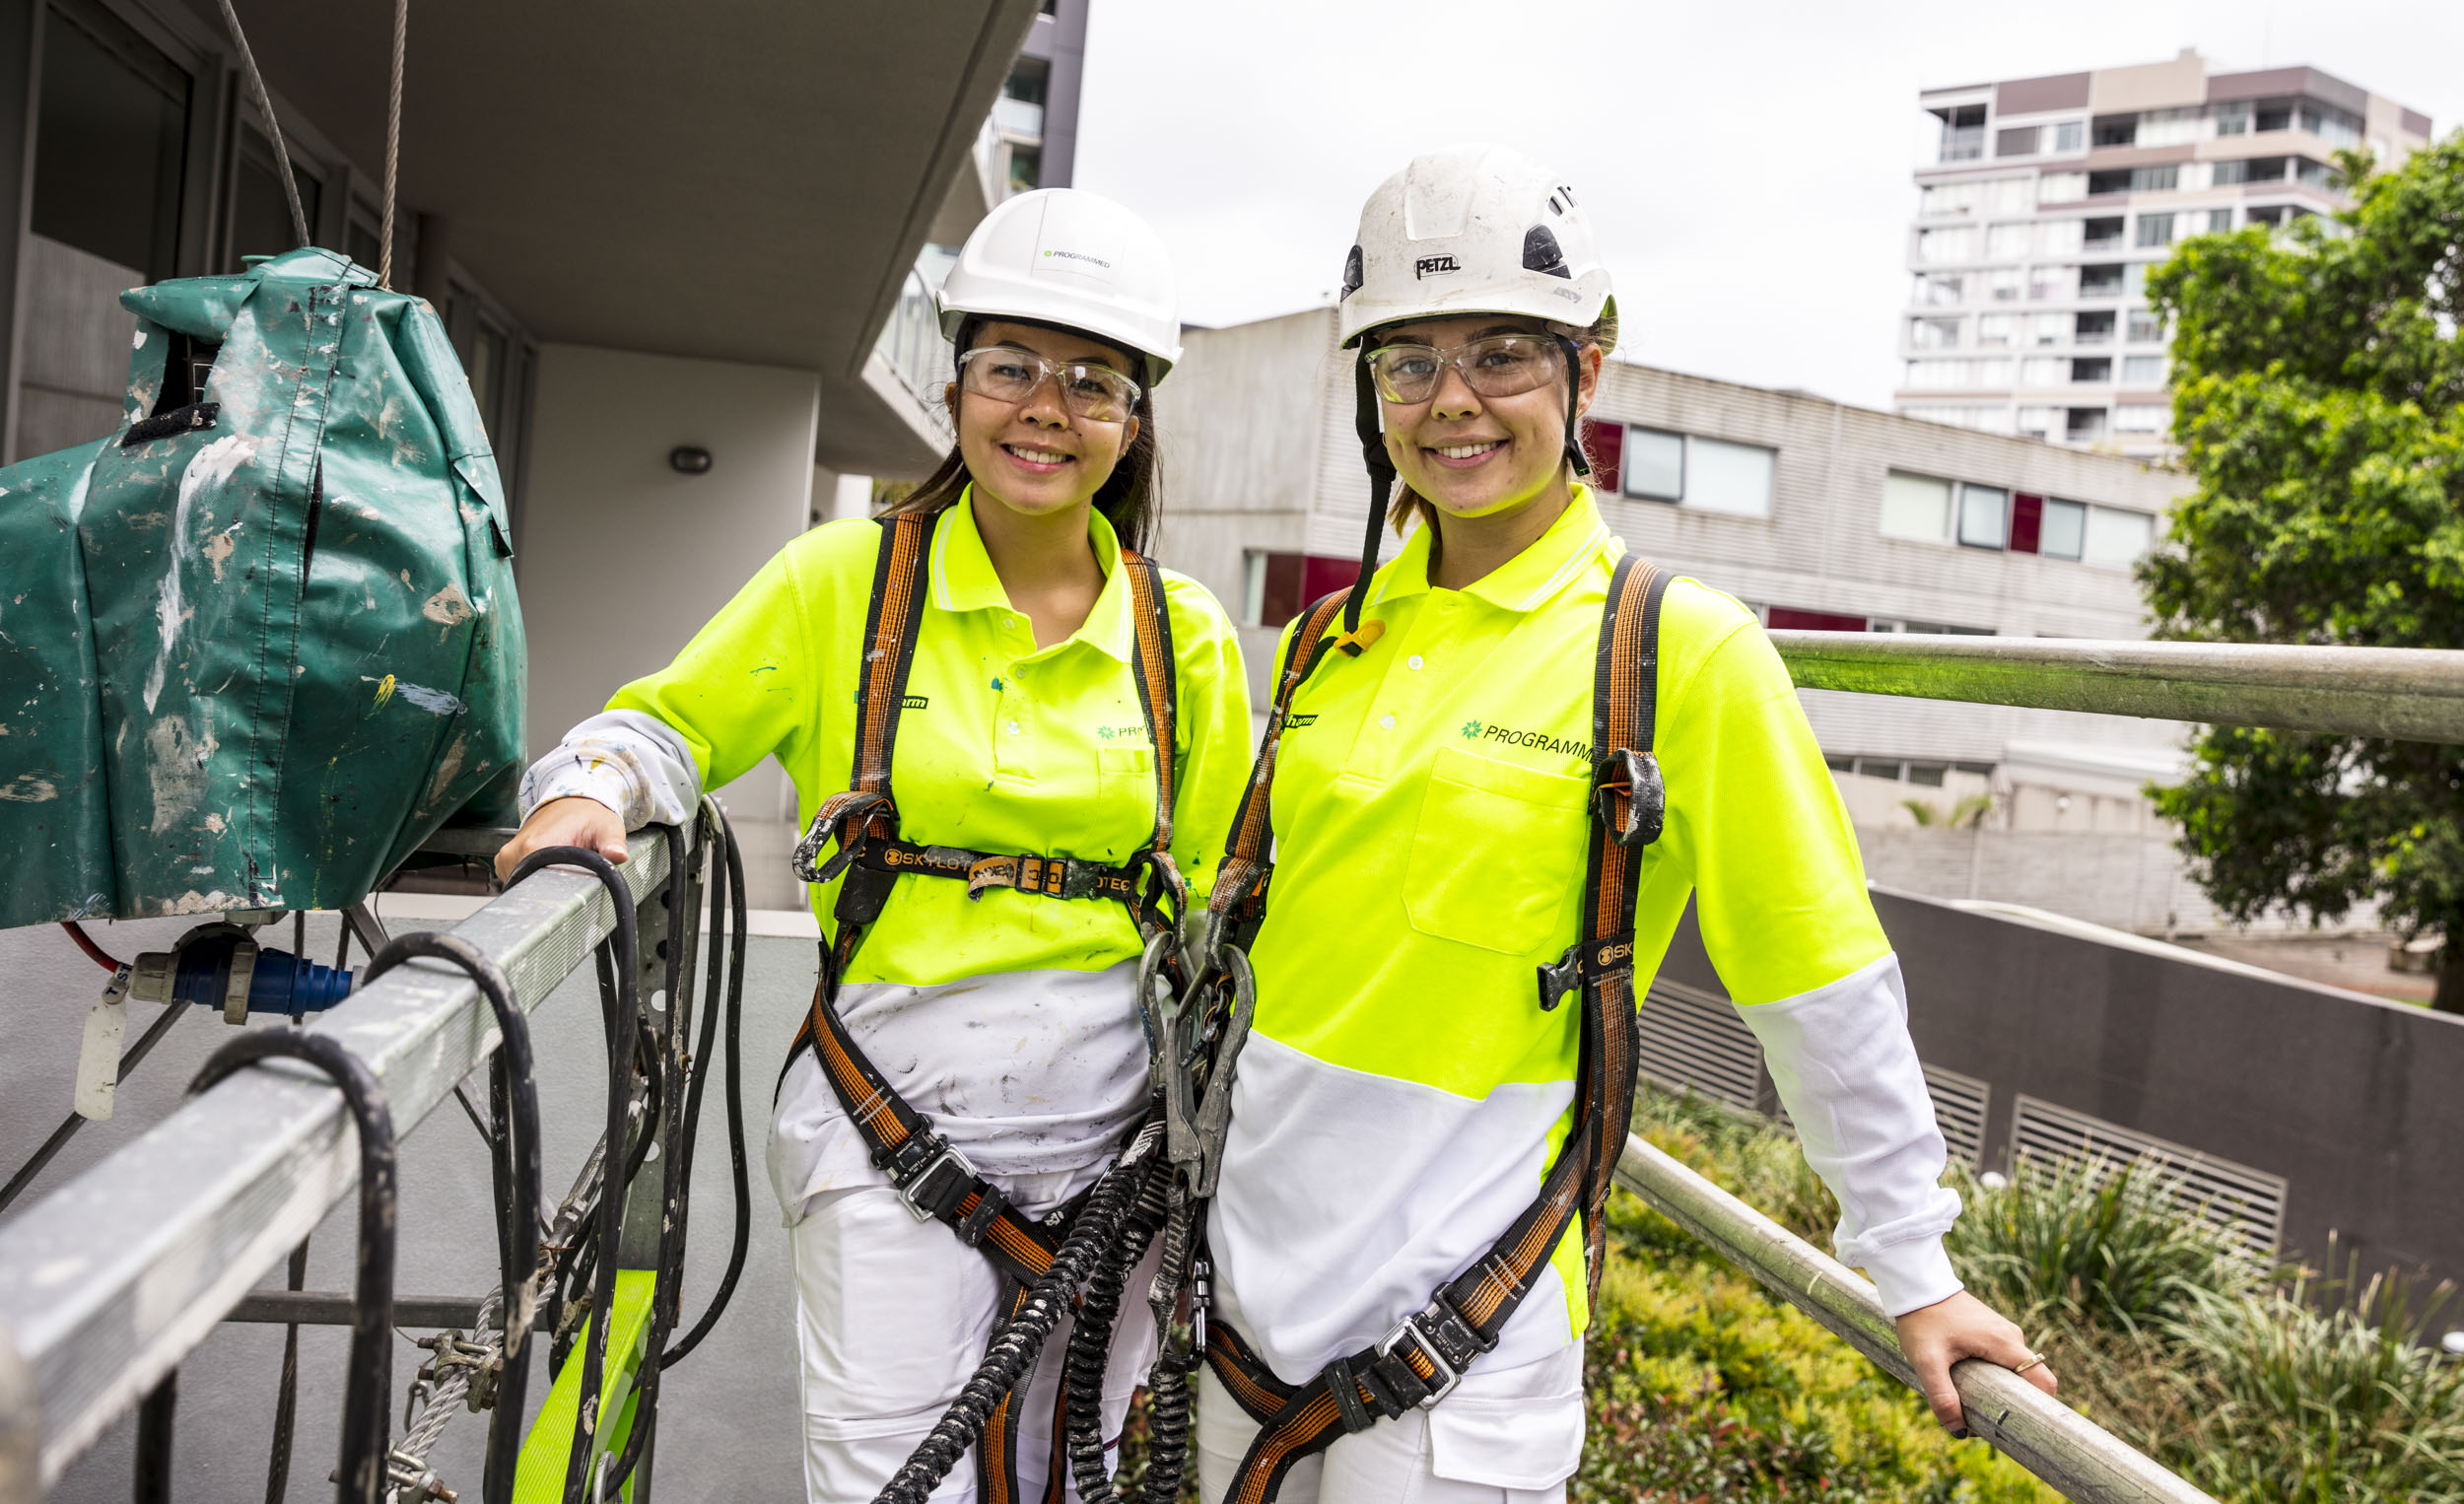 Two Programmed female tradies